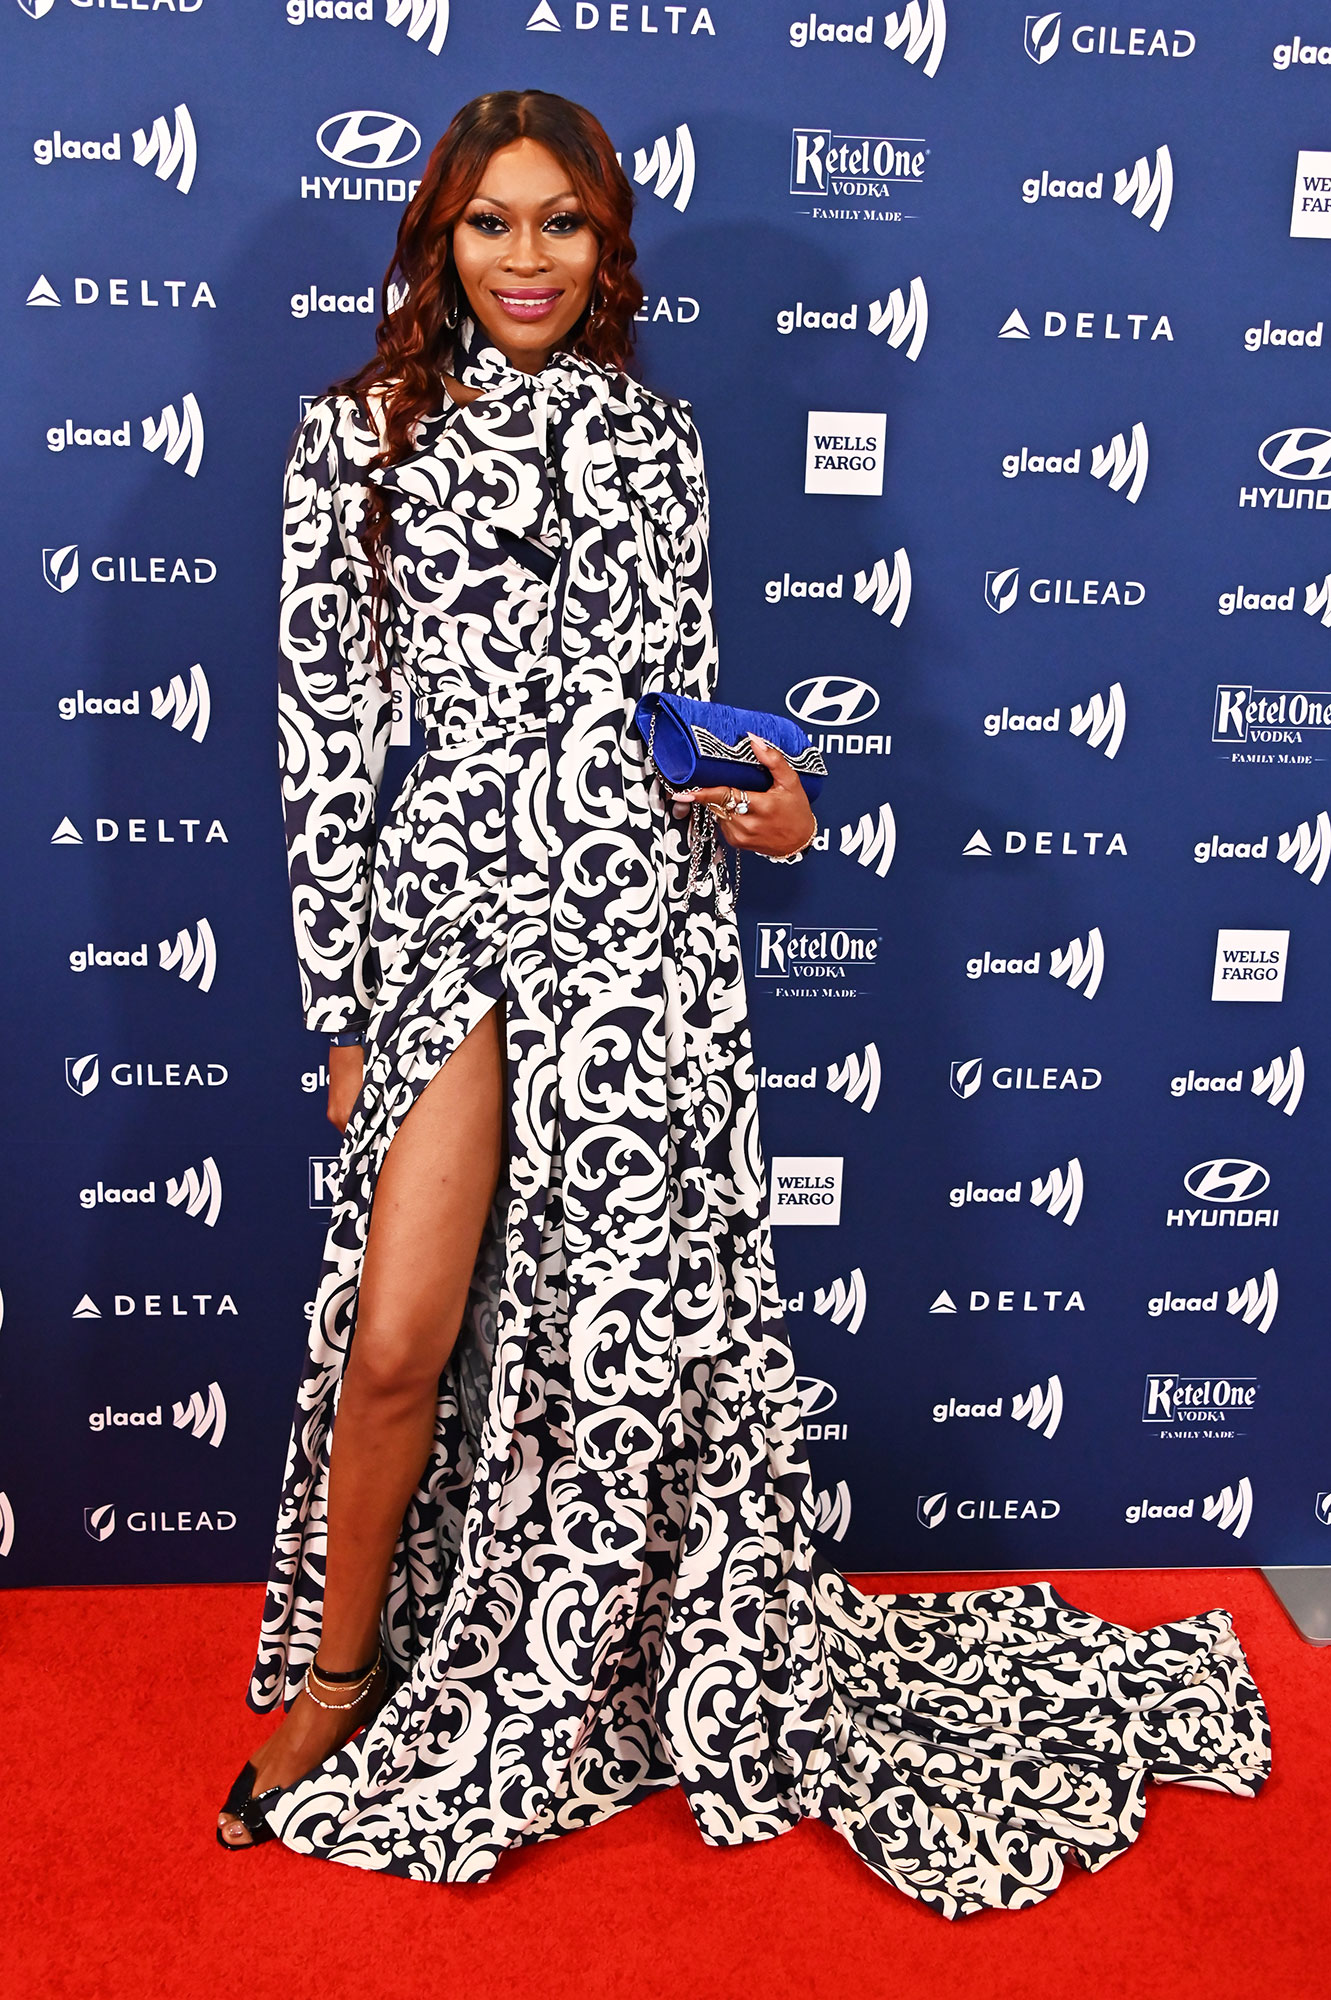 See the Stars at the GLAAD Awards Dominique Jackson - Wearing a black and white printed Adrian Alicea gown with Christian Louboutin heels.